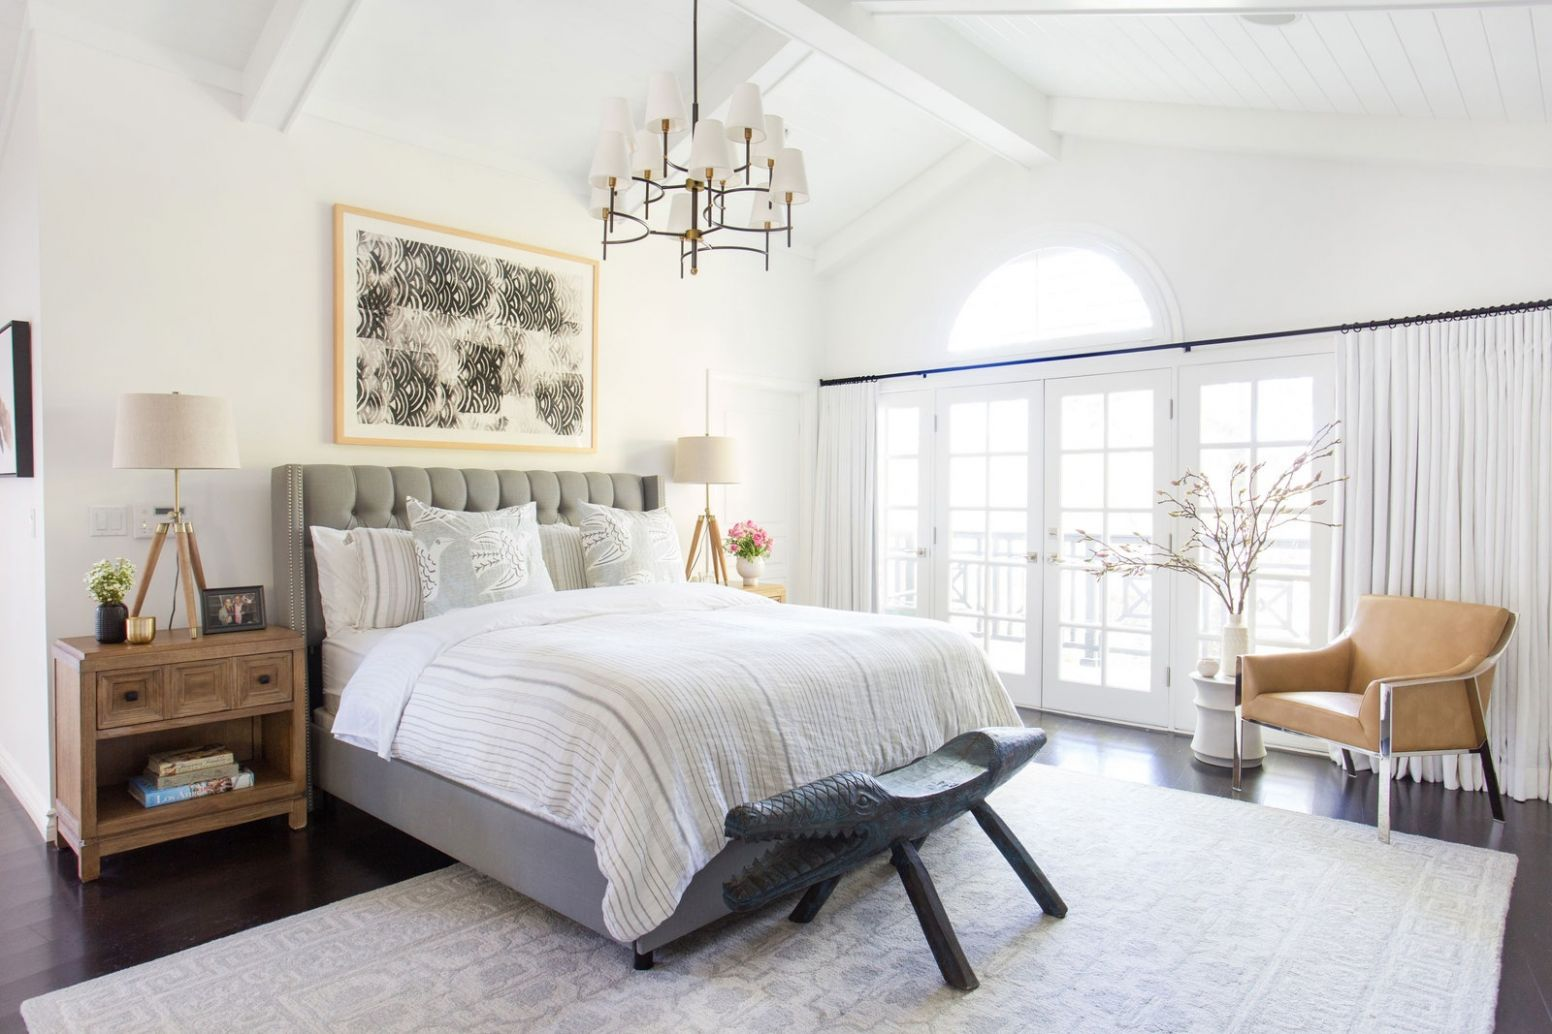 11 Bedroom Color Ideas: The Best Color Schemes for Your Bedroom ..